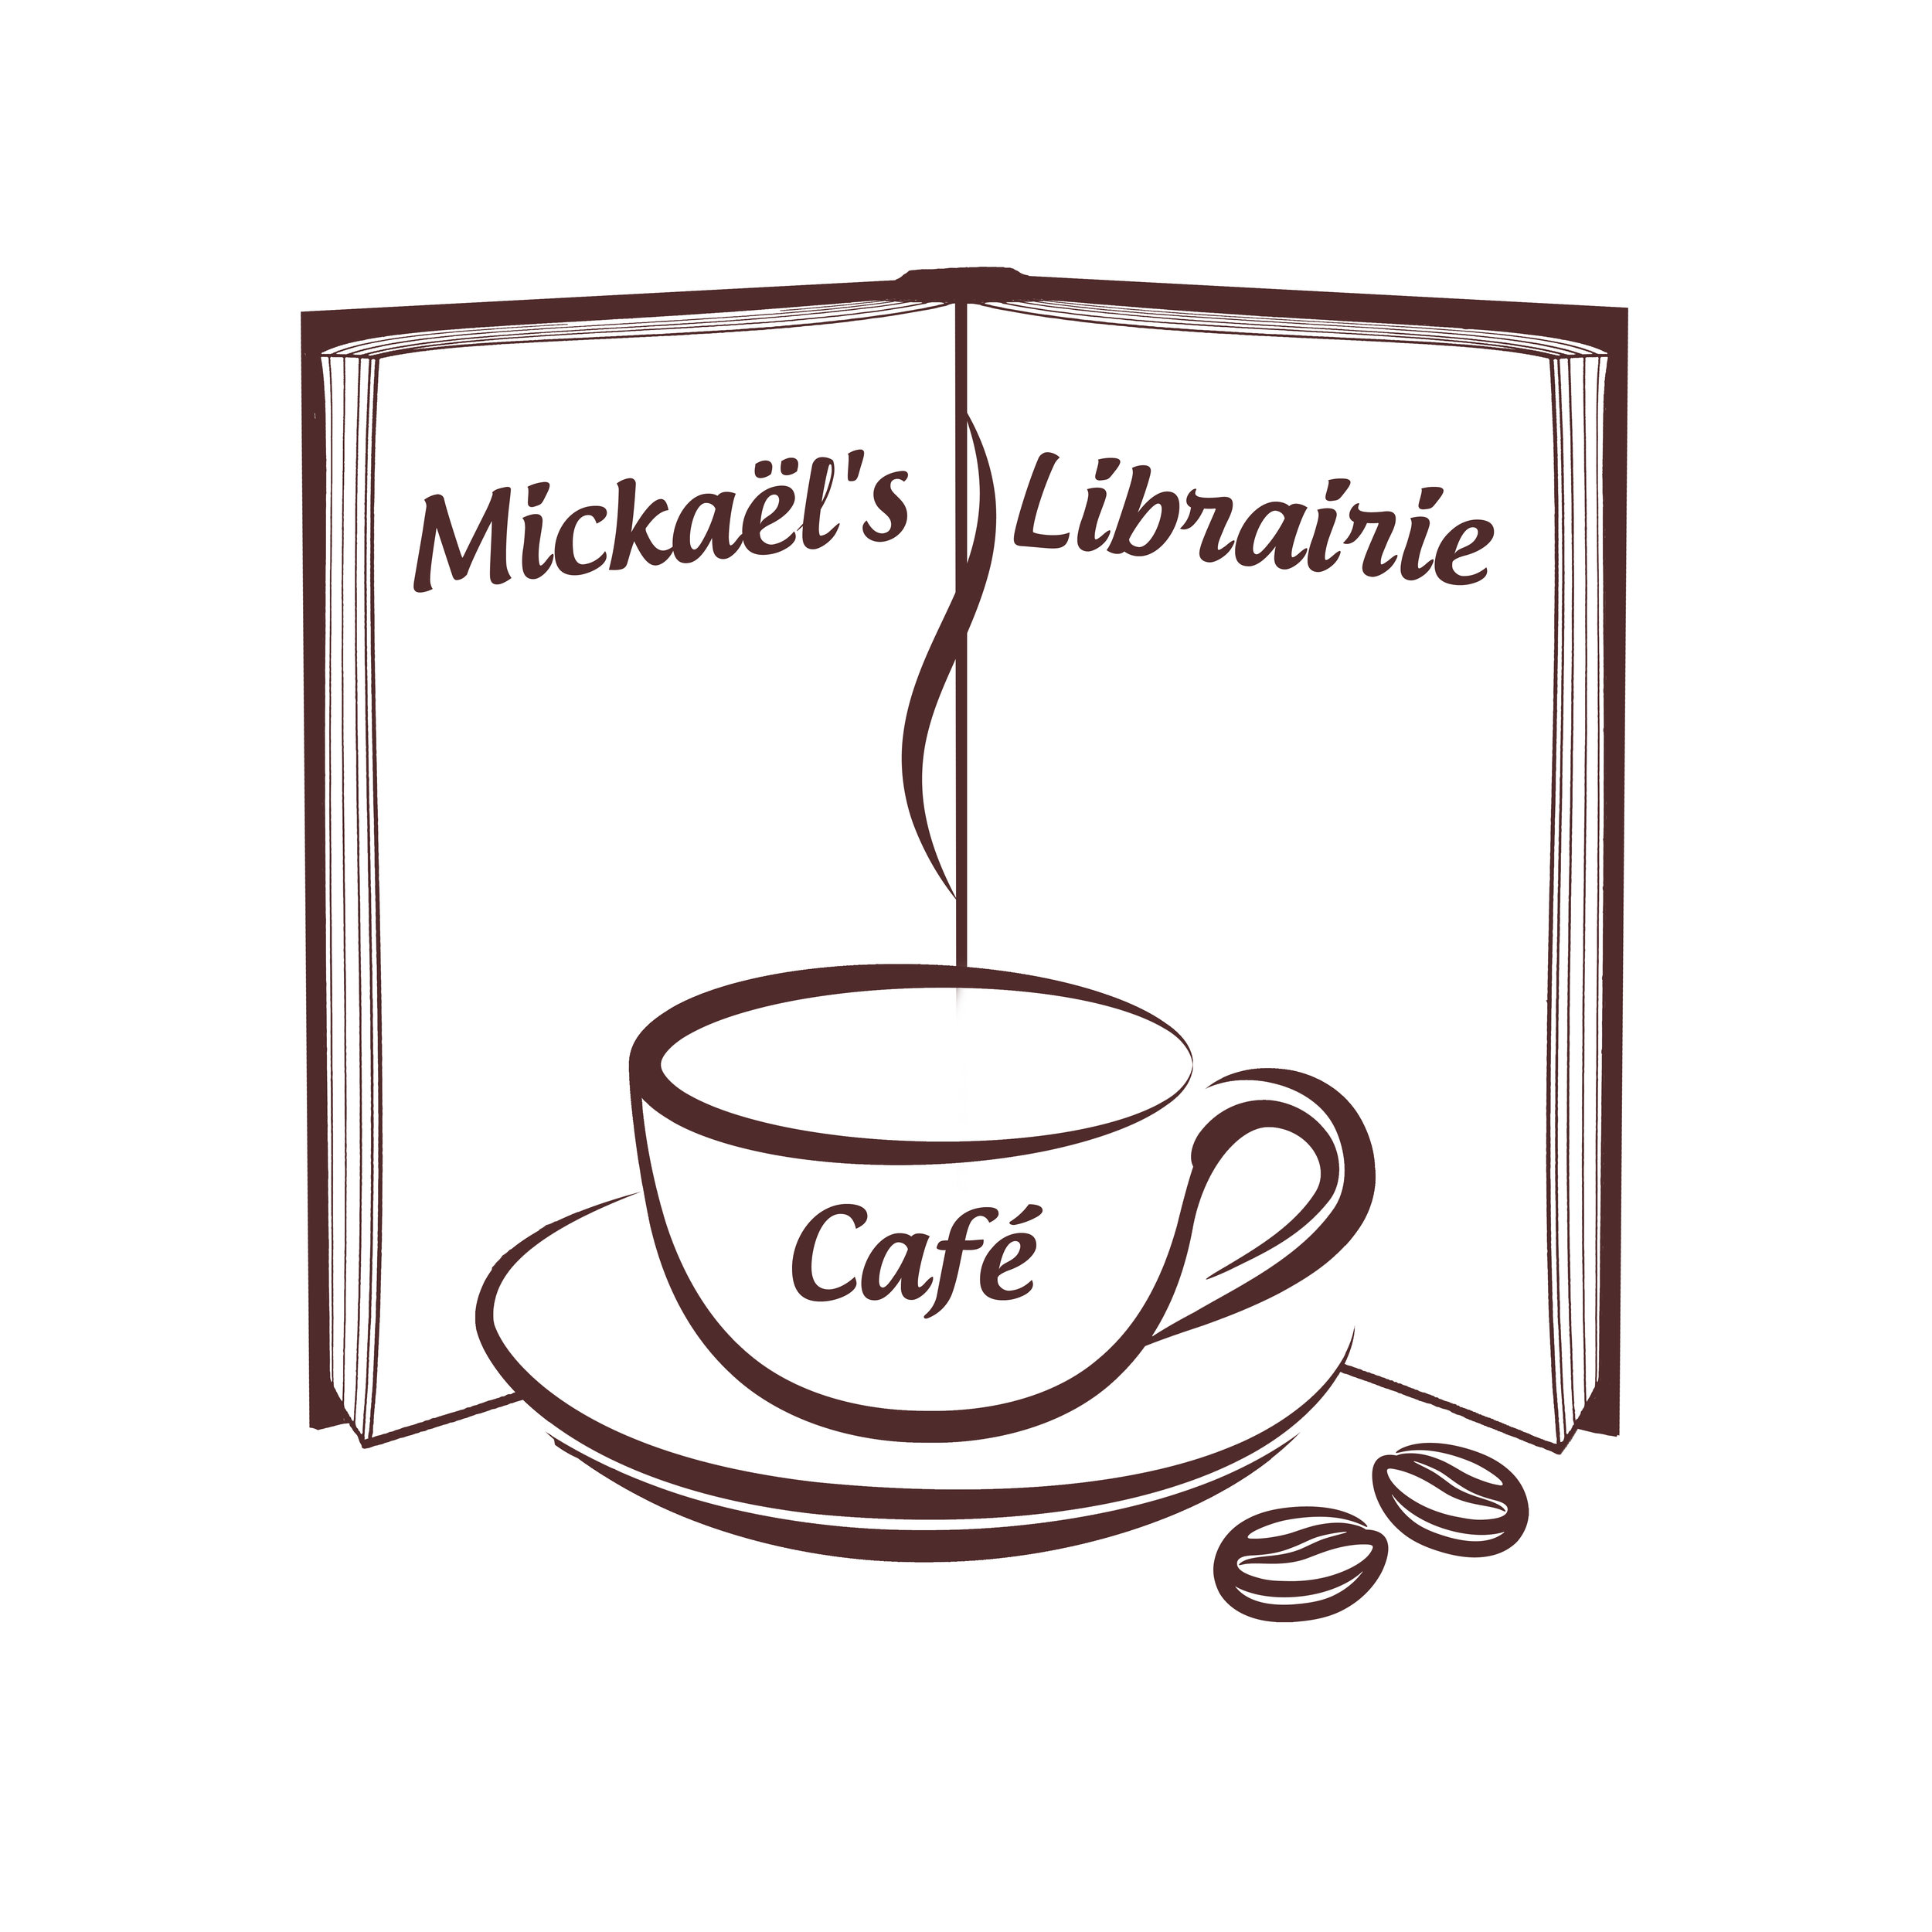 Cafe Logo - Facebook.jpg